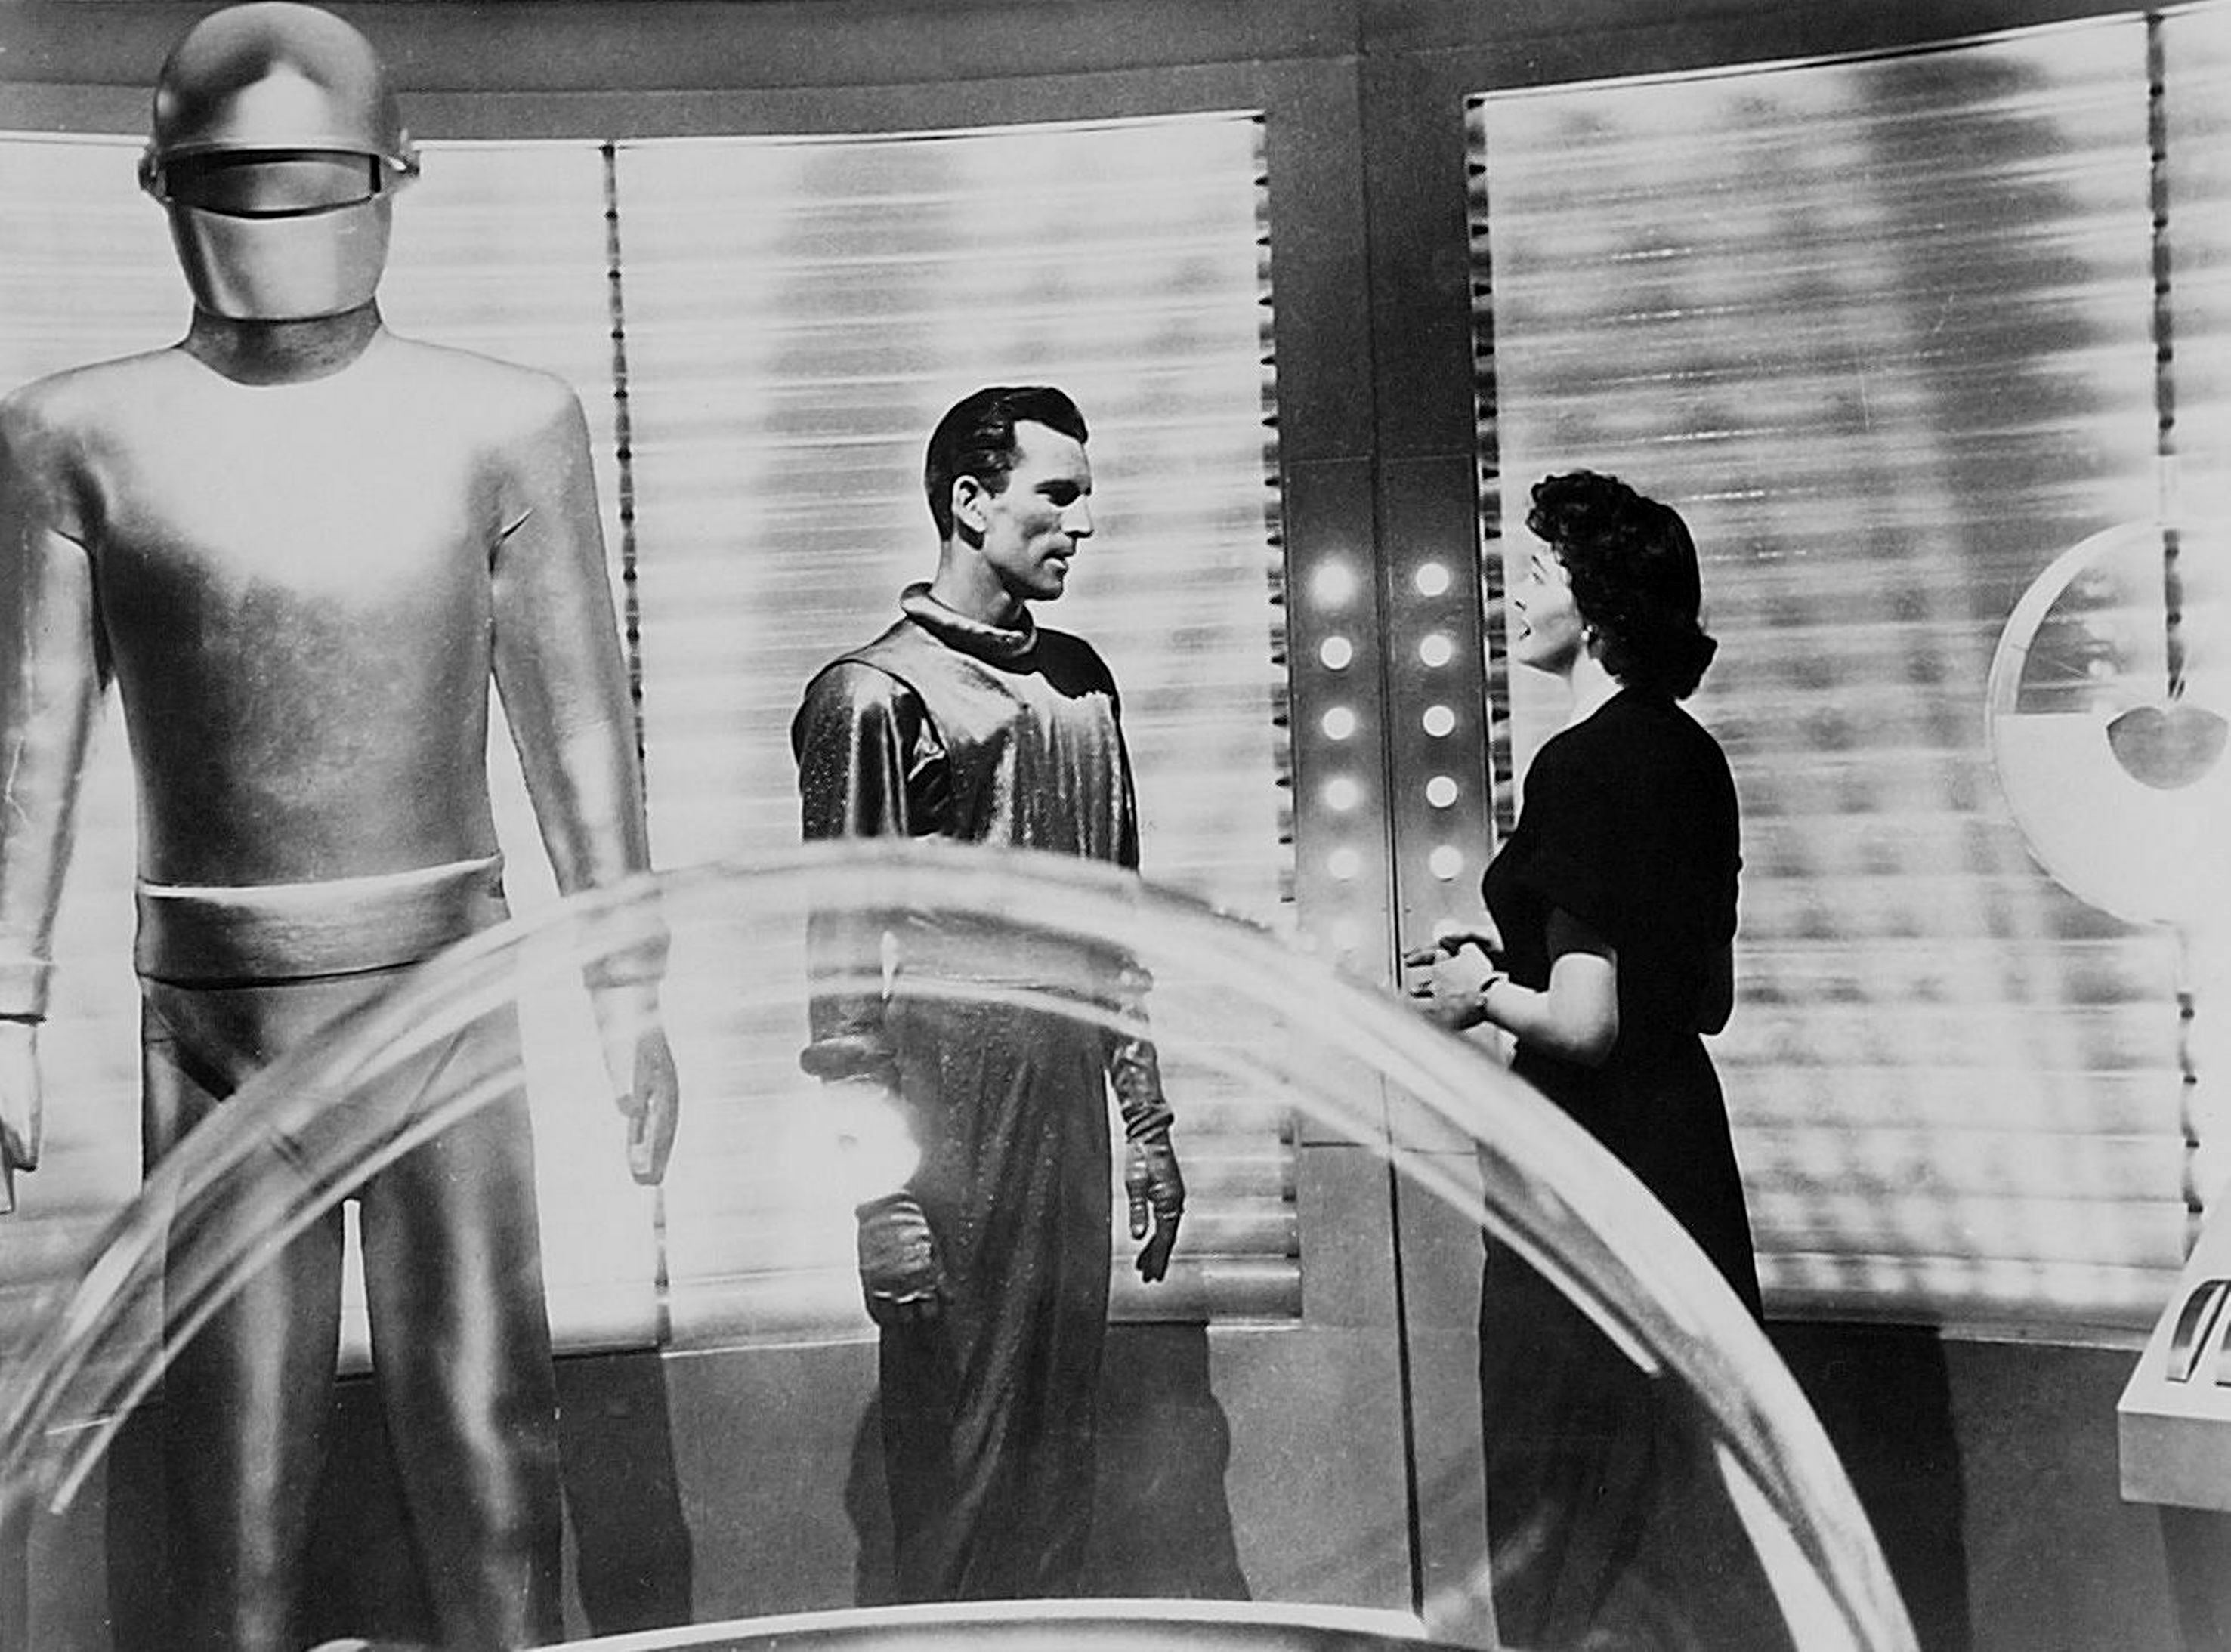 Gort (Lock Martin), Klaatu (Michael Rennie) and Helen Benson (Patricia Neal) inside the saucer in The Day the Earth Stood Still (1951)